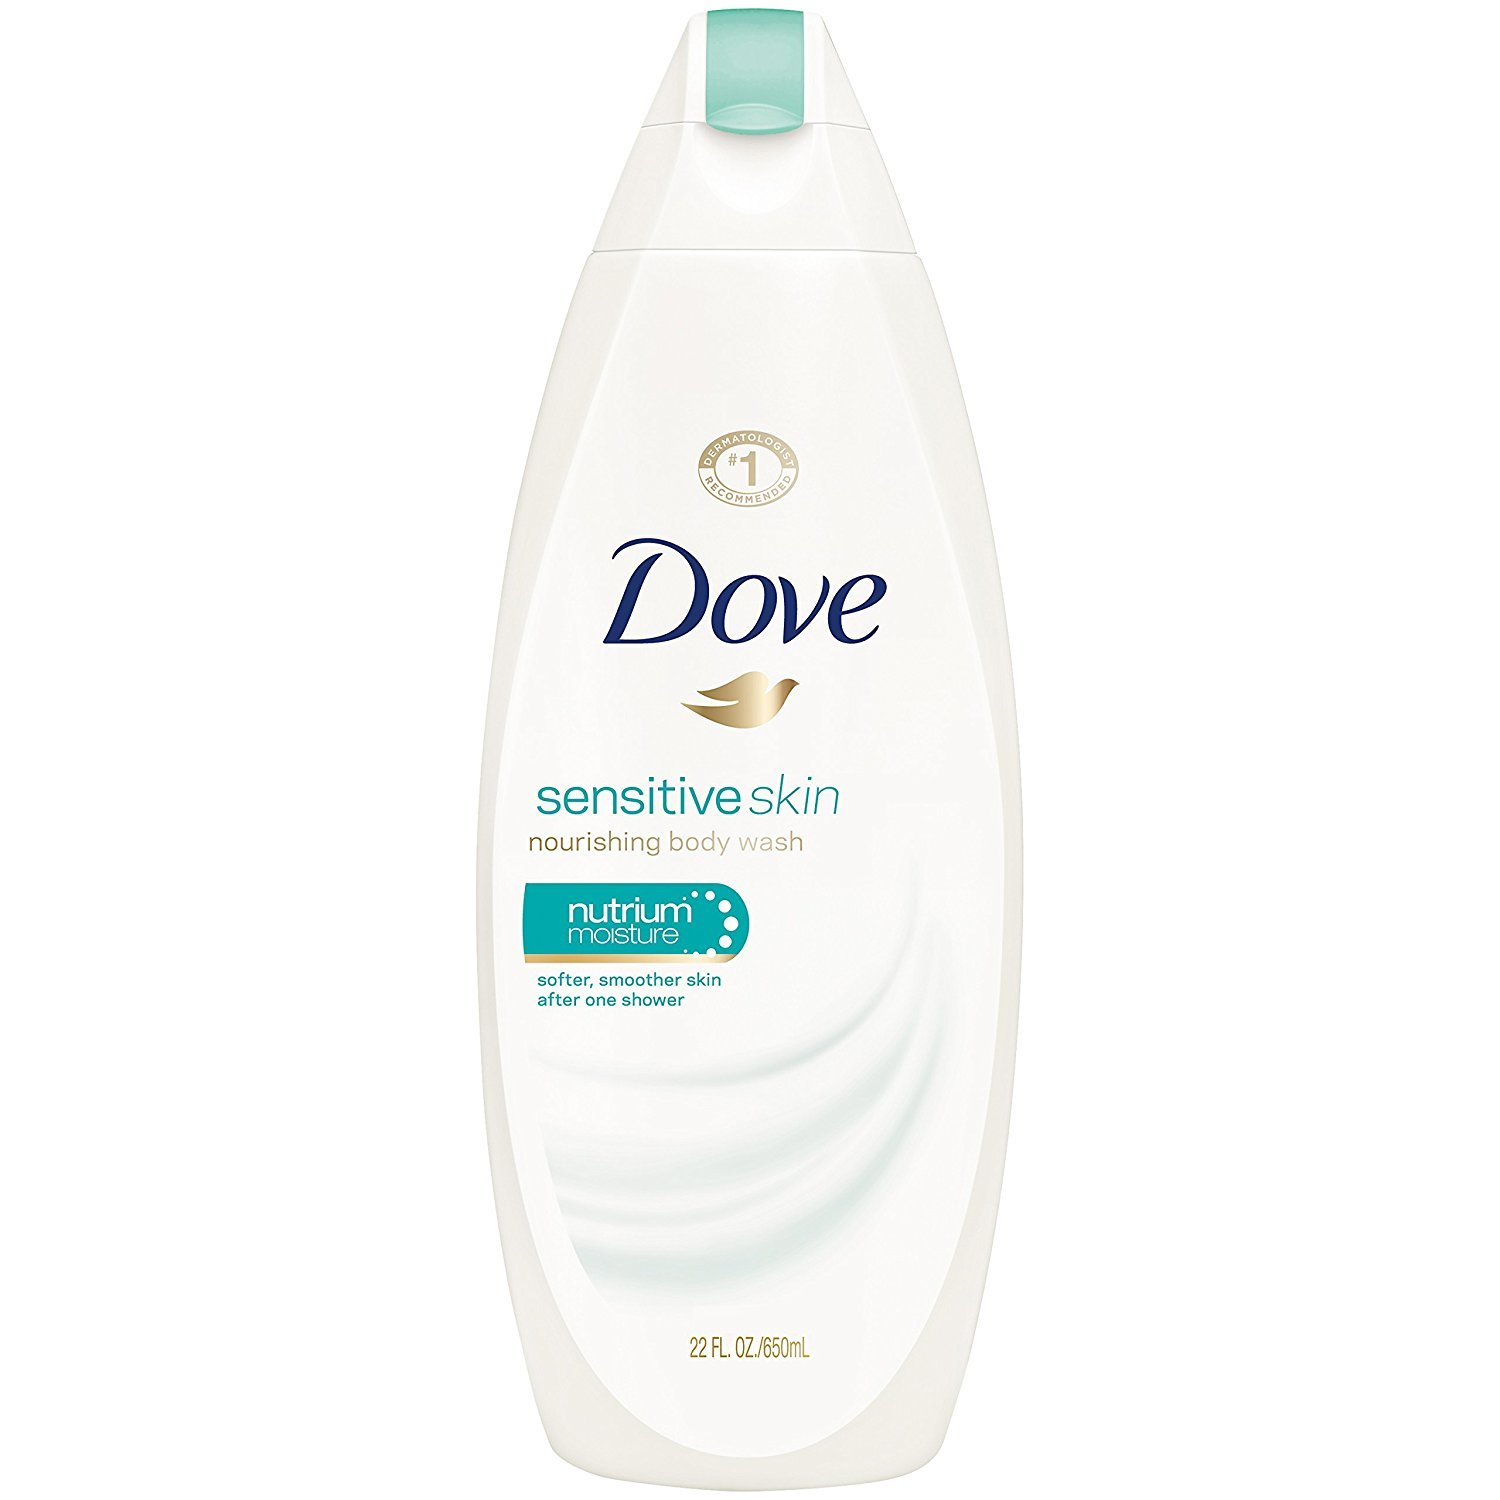 Dove Sensitive Skin Unscented Body Wash reviews in Body